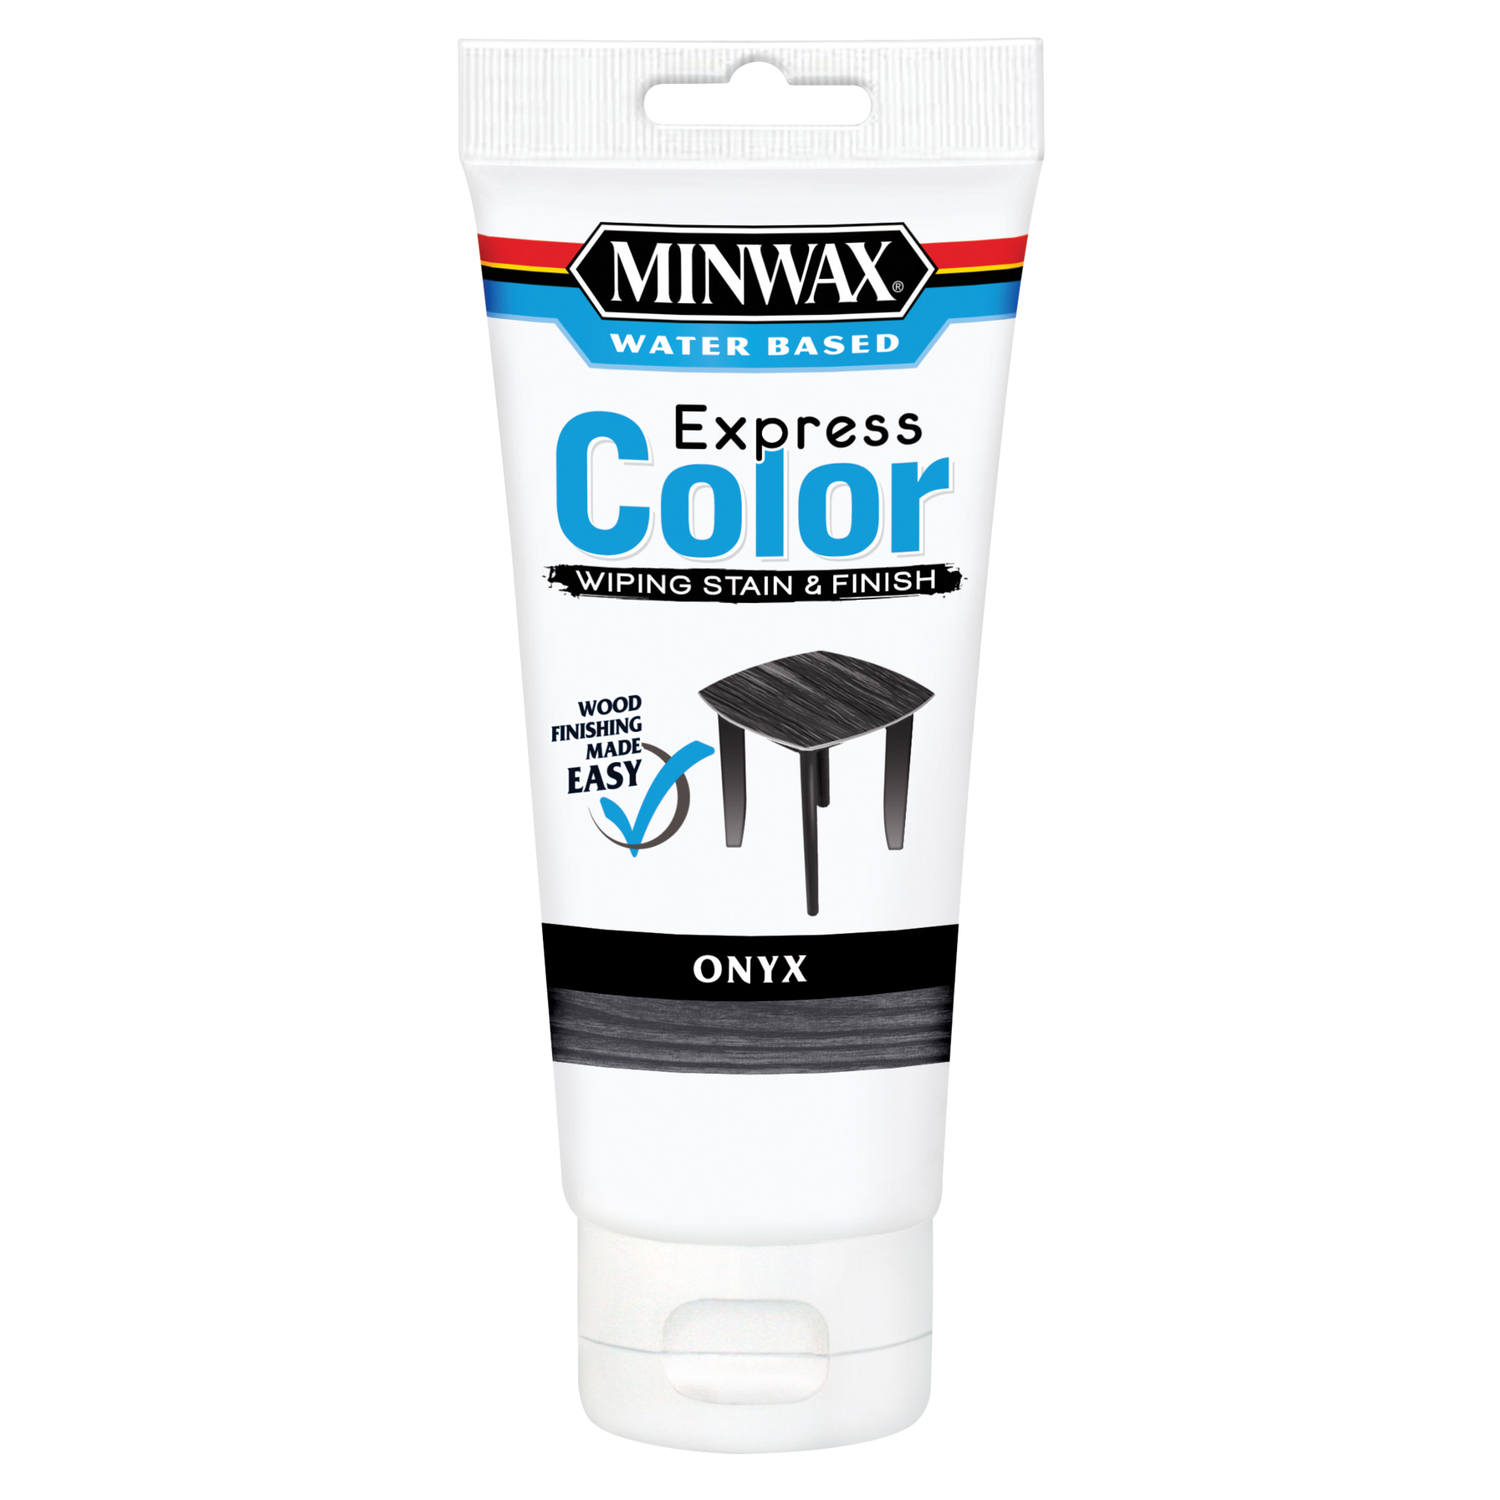 Minwax  Express Color  Semi-Transparent  Onyx  Water-Based  Acrylic  Wiping Stain and Finish  6 oz.